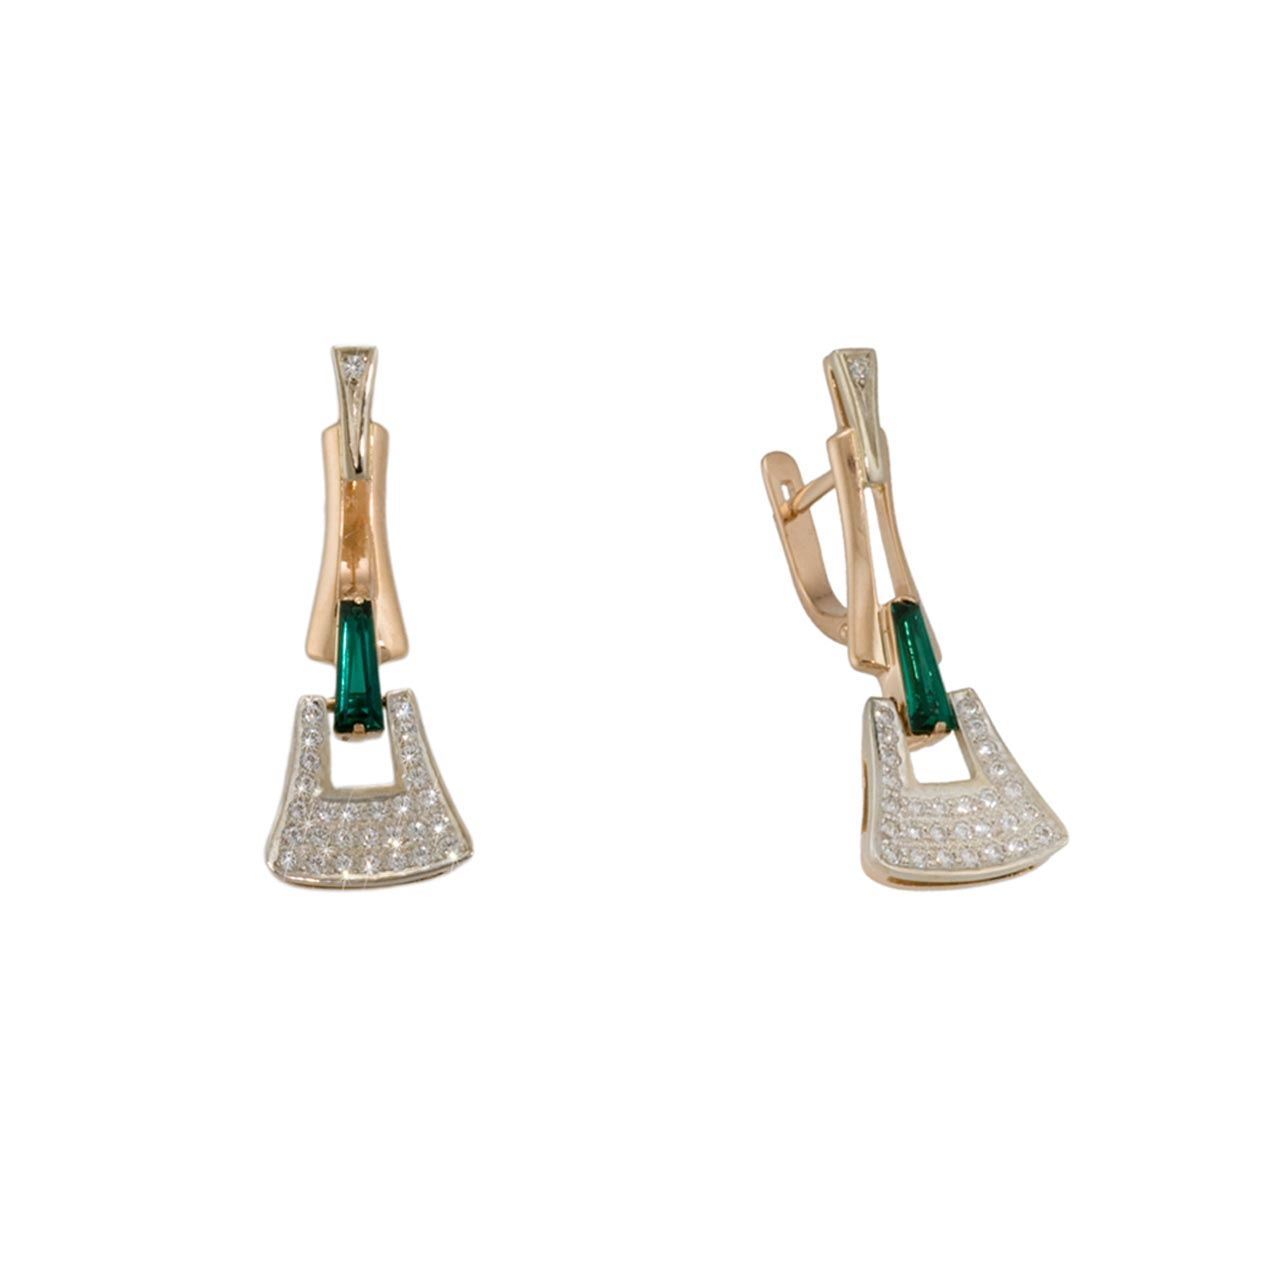 Russian earrings with faux emeralds